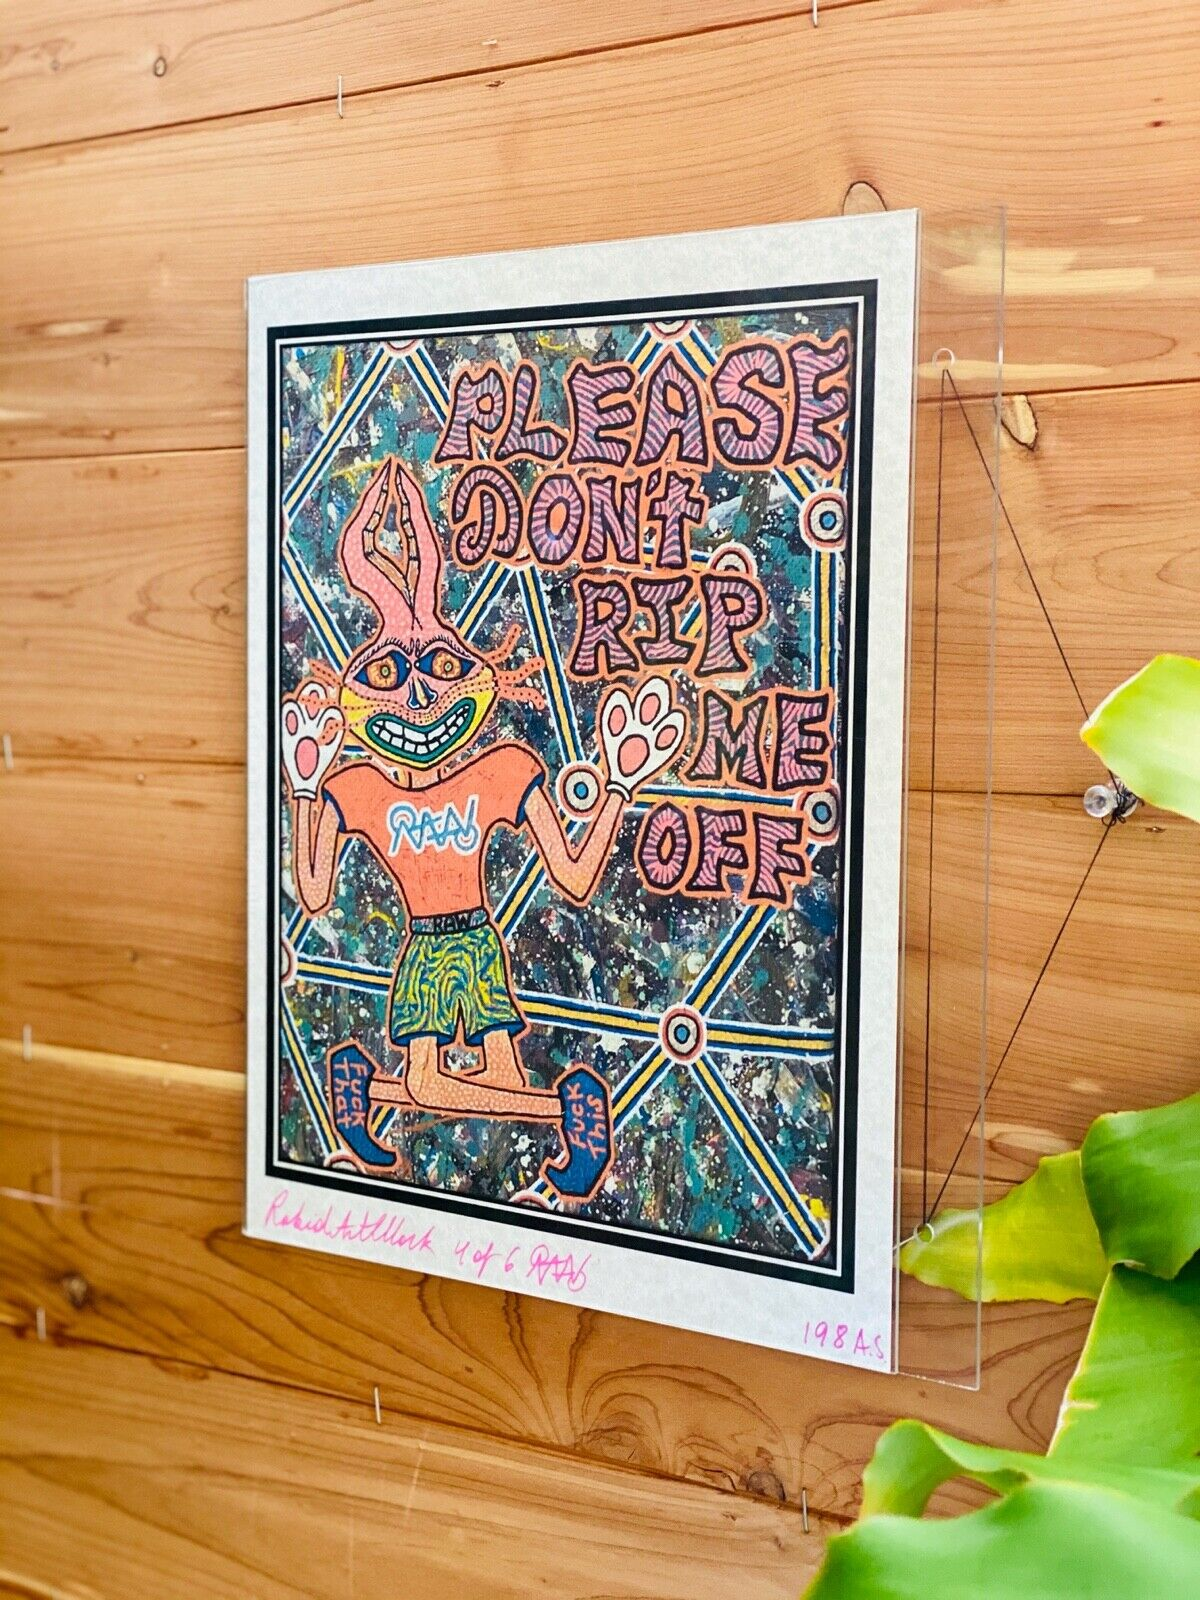 Contemporary Art Funny Bunny 4/6 Limited AS Edition Signed Parchment Print - $30.00